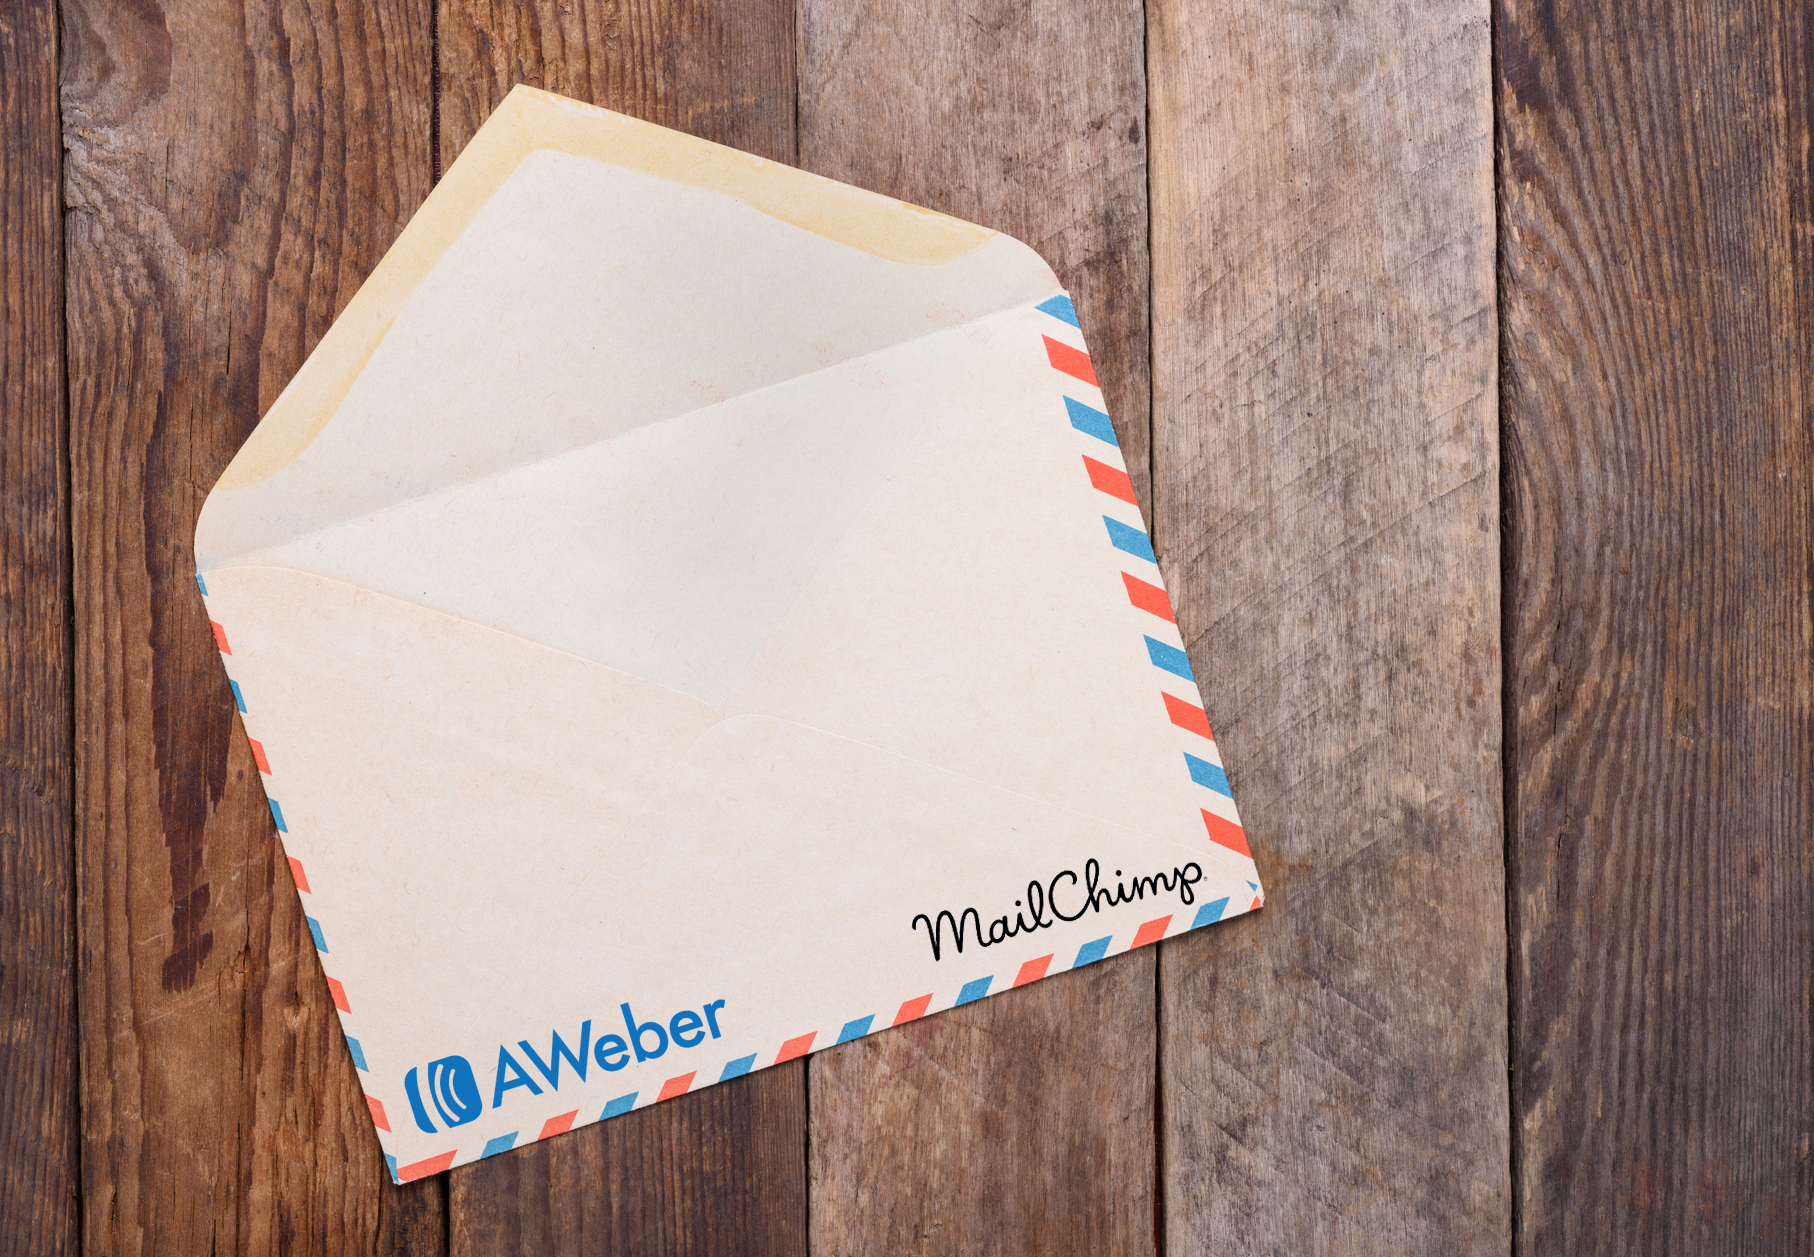 Aweber Email Marketing 25% Off Voucher Code March 2020